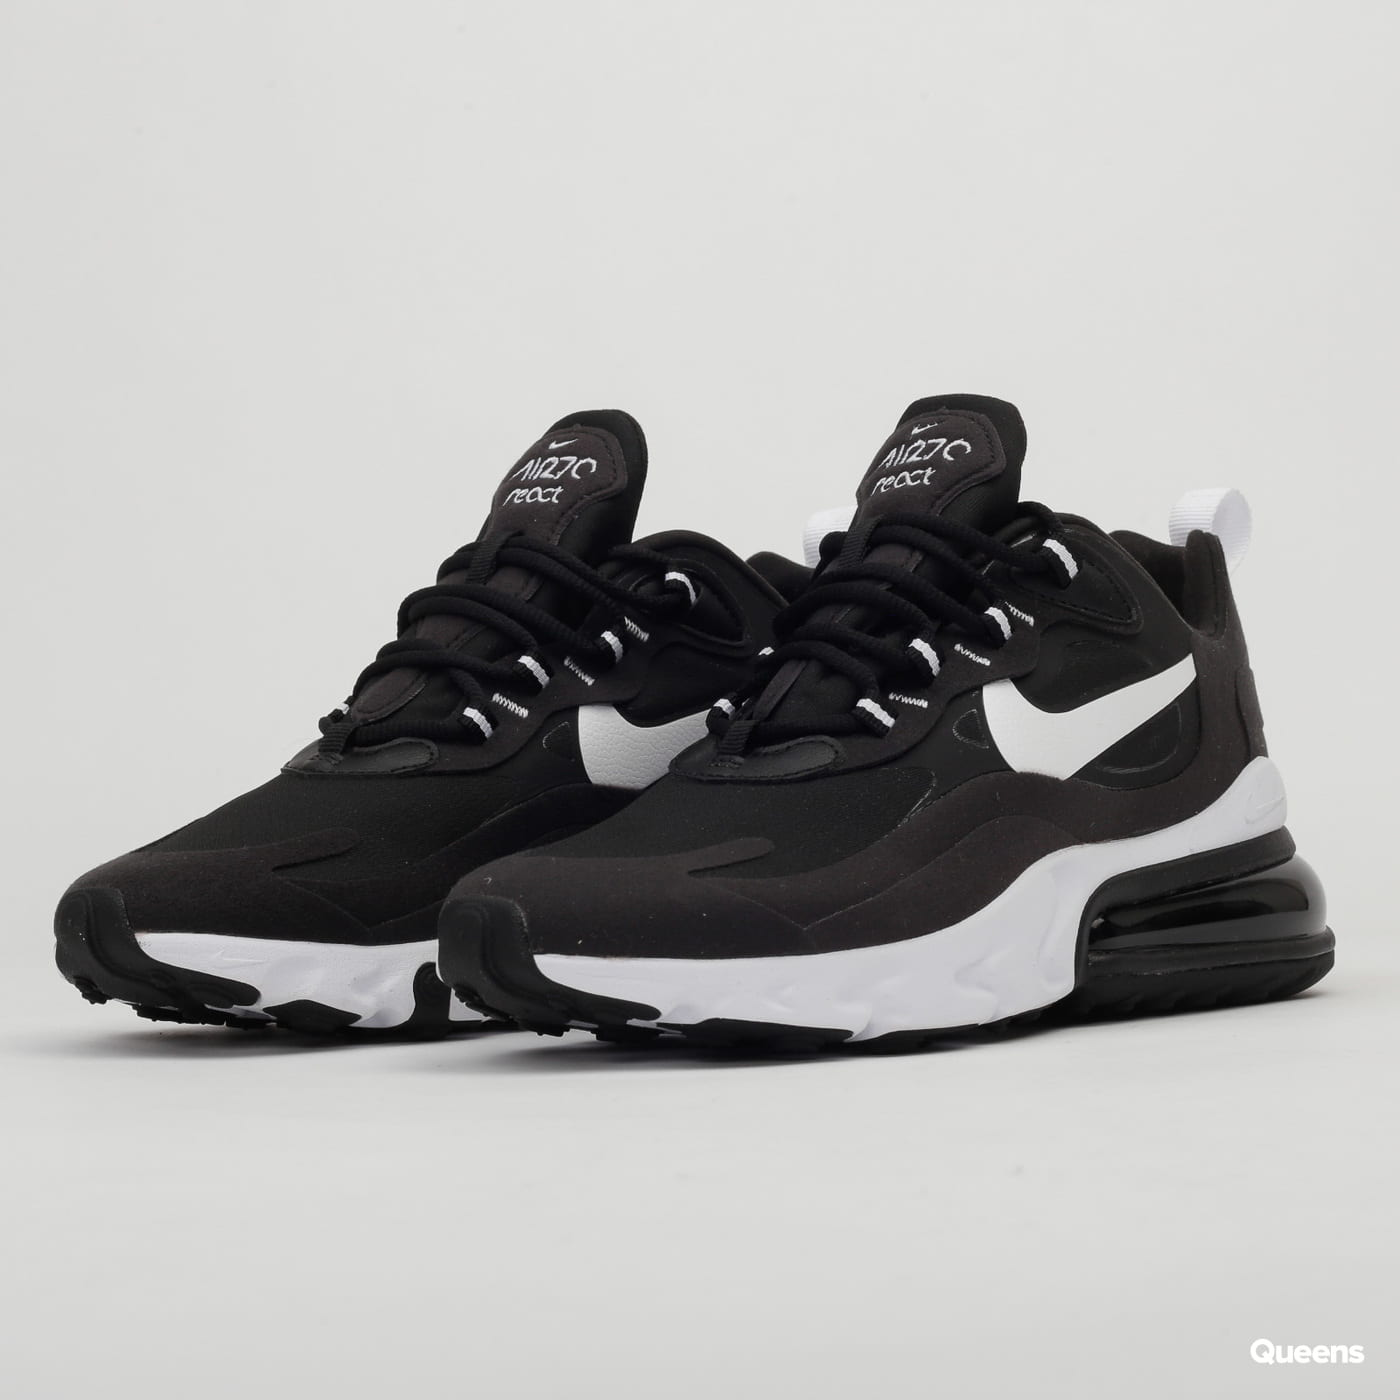 air max 270 react black and white